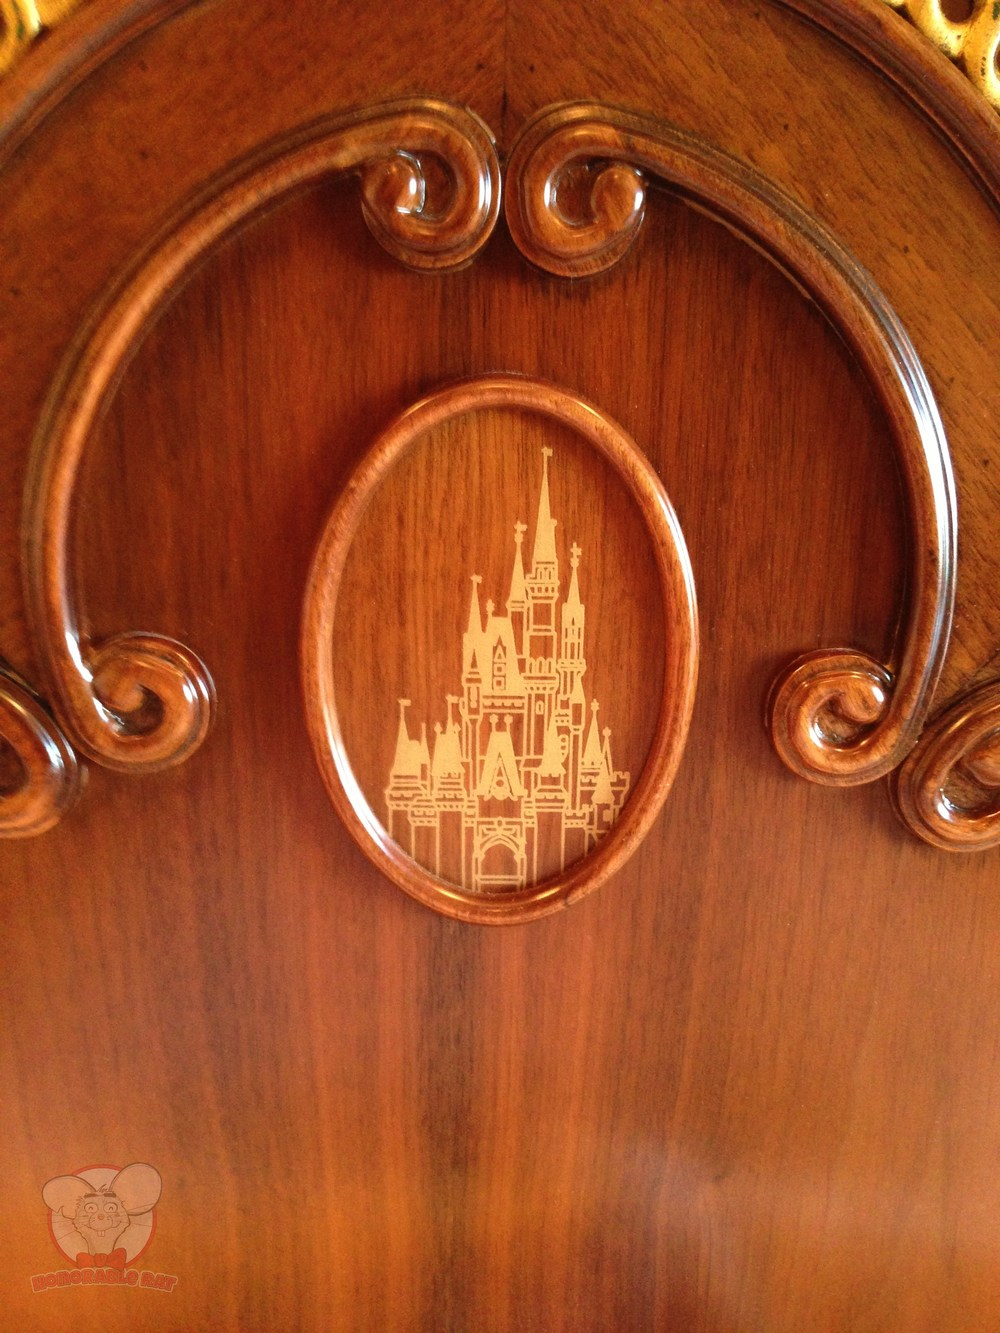 Castle on the bed's headboard